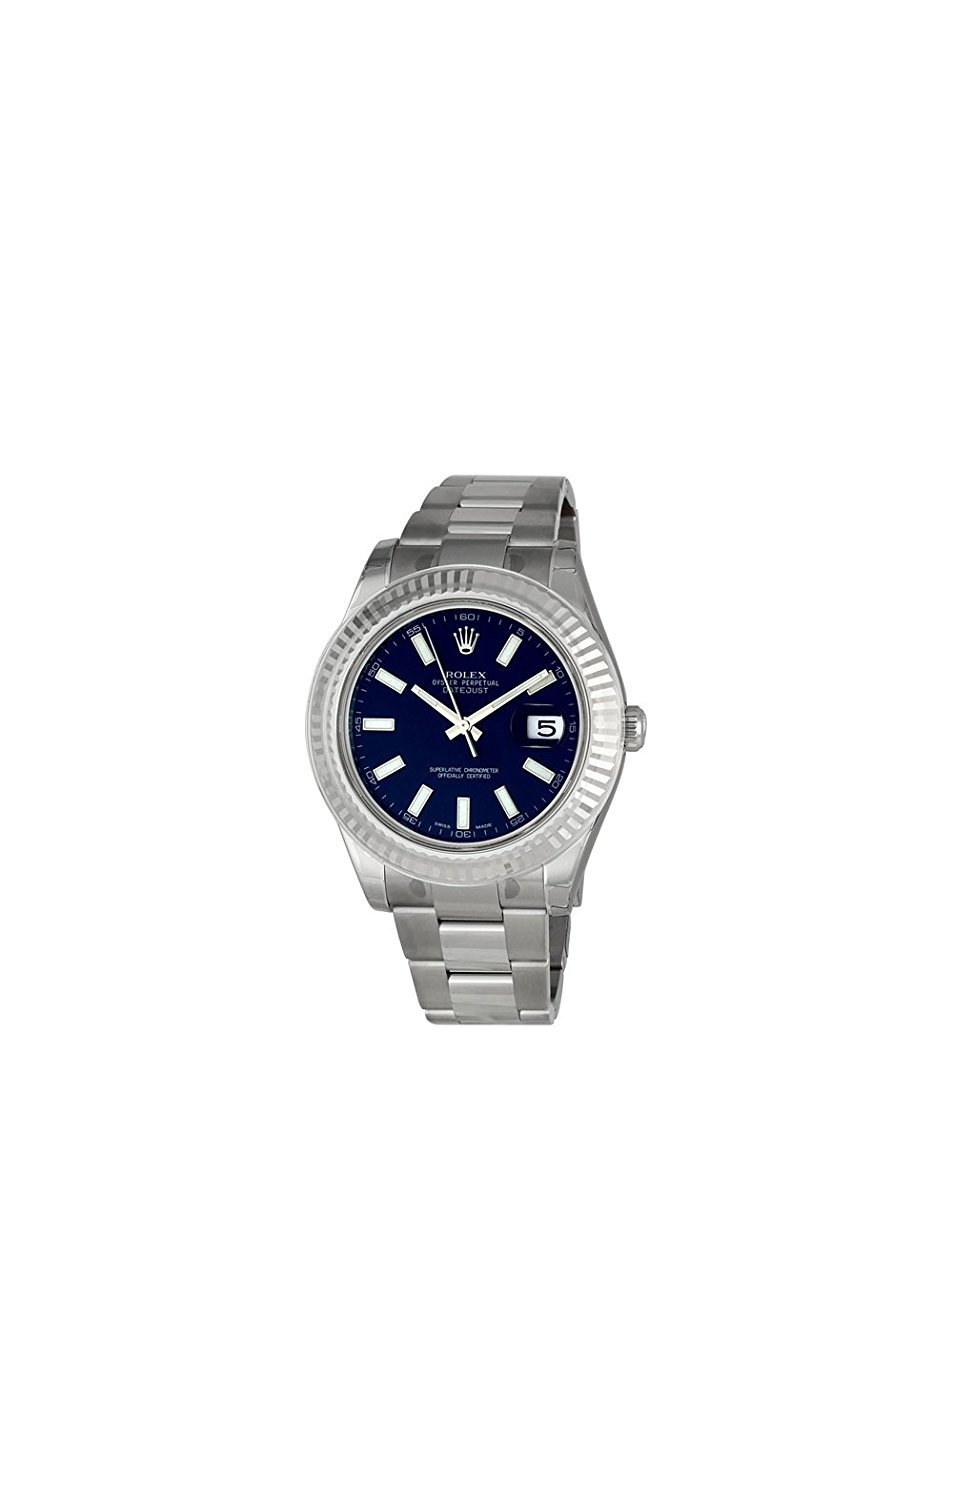 Rolex Datejust II Blue Index Dial Fluted 18k White Gold Bezel Oyster...